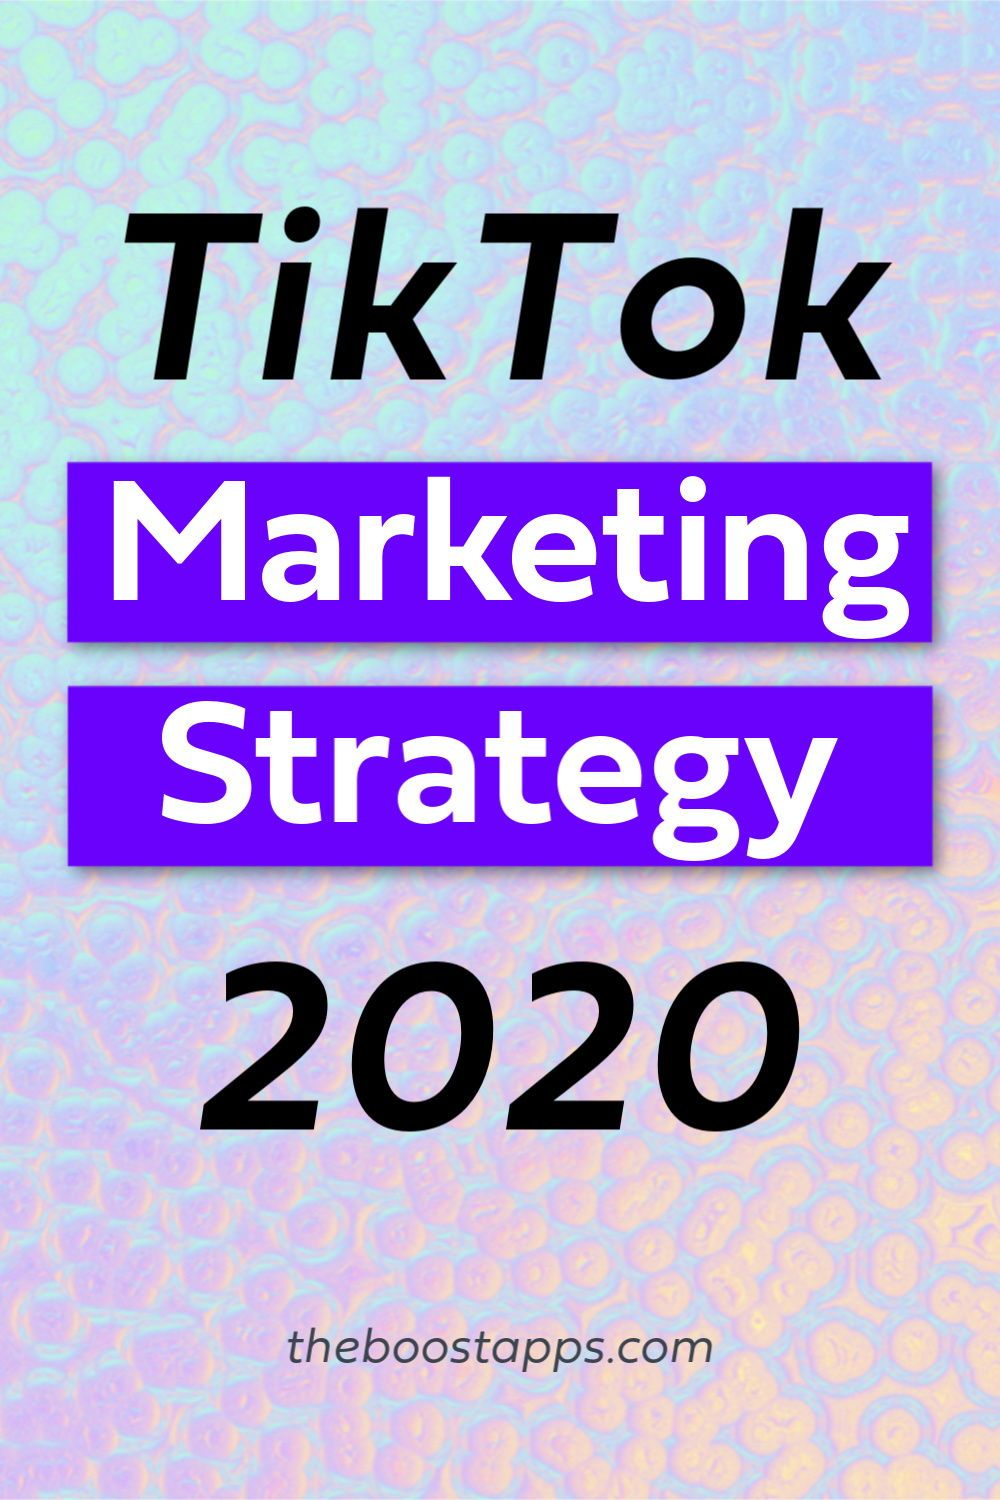 How To Use Tiktok For Business Boosted Digital Marketing Tools Marketing Advice Marketing Strategy Social Media